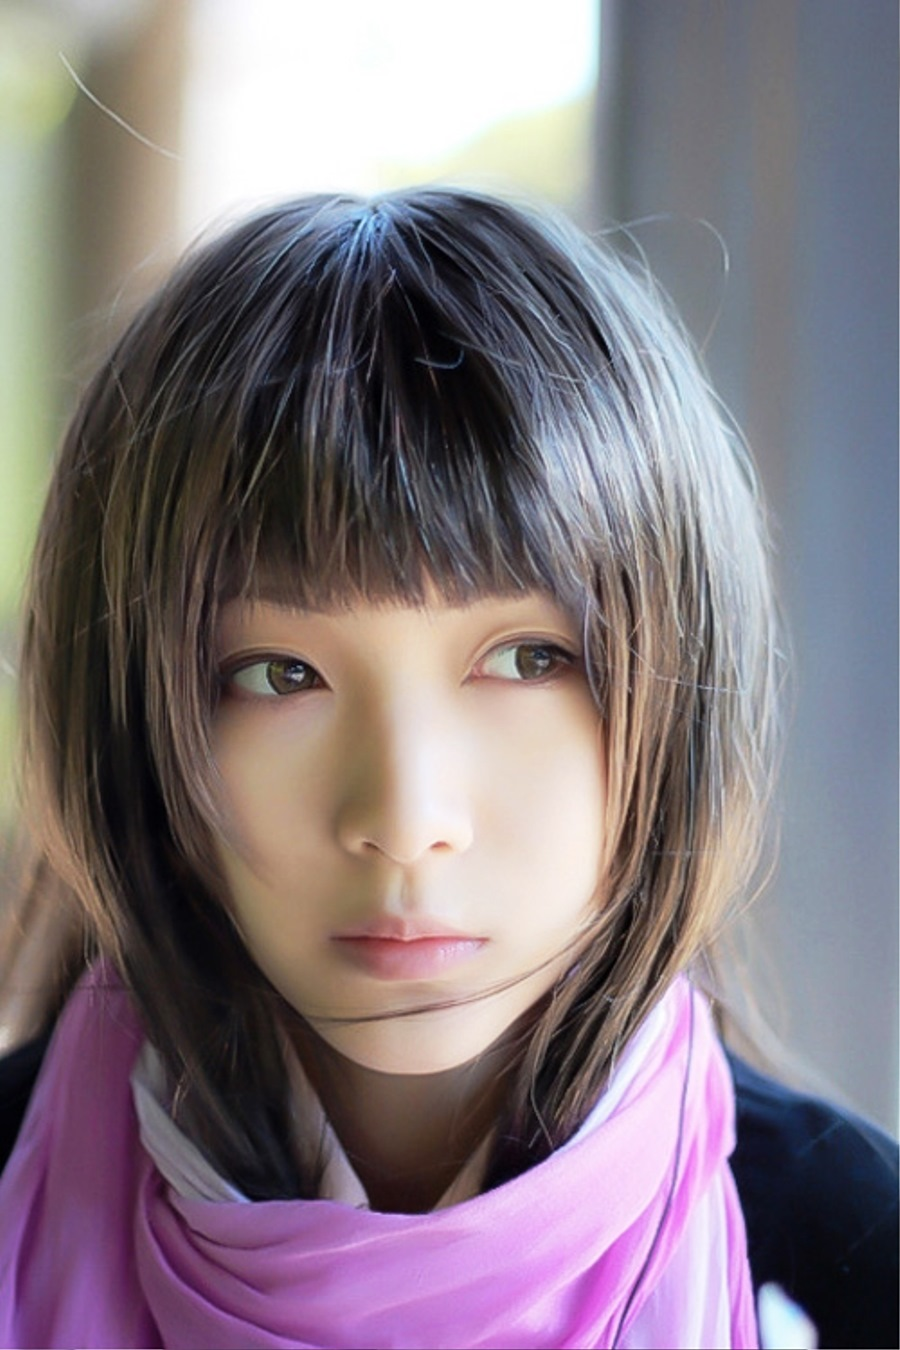 Short blunt bob hairstyle with bangs short hairstyles - Cute Short Asian Bob Haircut With Blunt Bangs